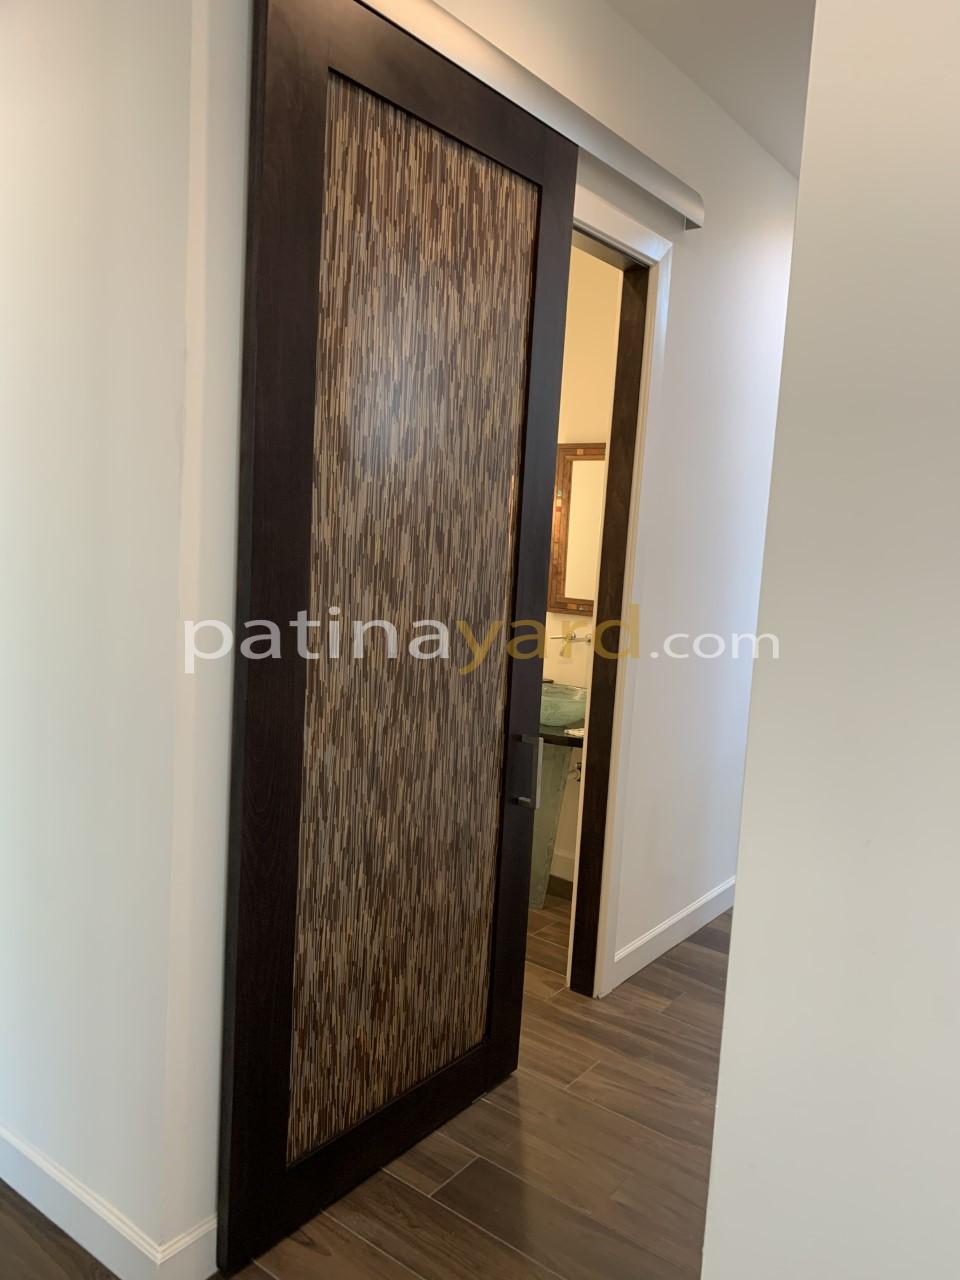 contemporary 3 form panel and solid wood frame